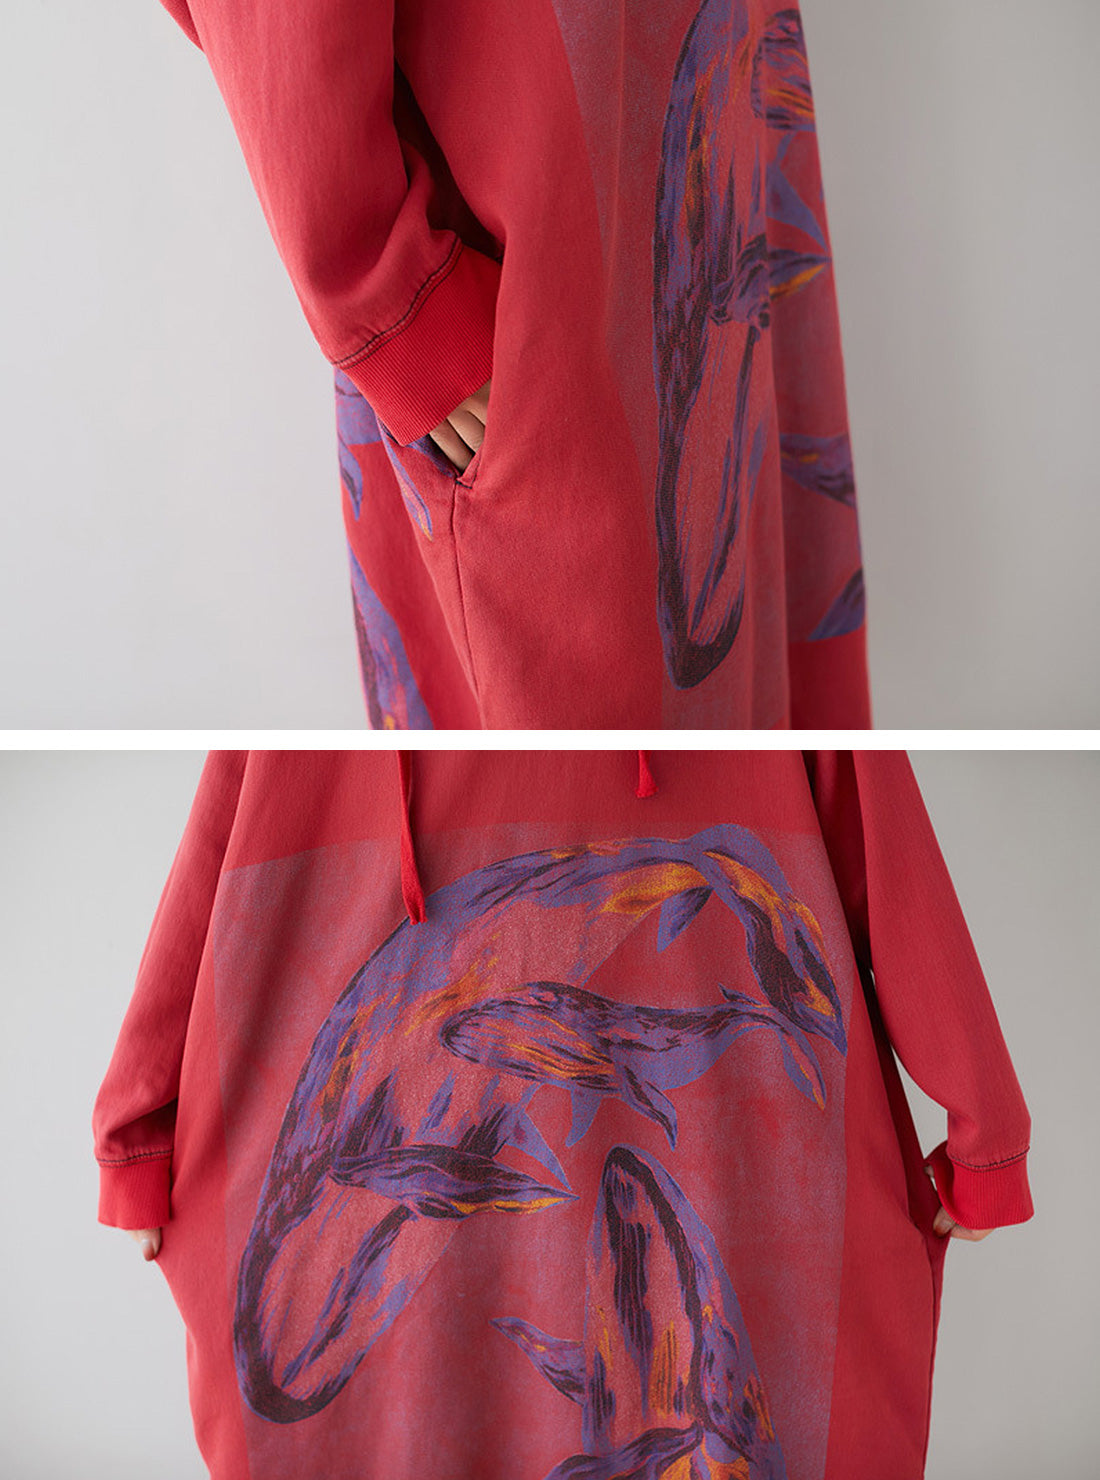 Loose Ethnic Floral Hooded Sweatsirt Dress Details 2